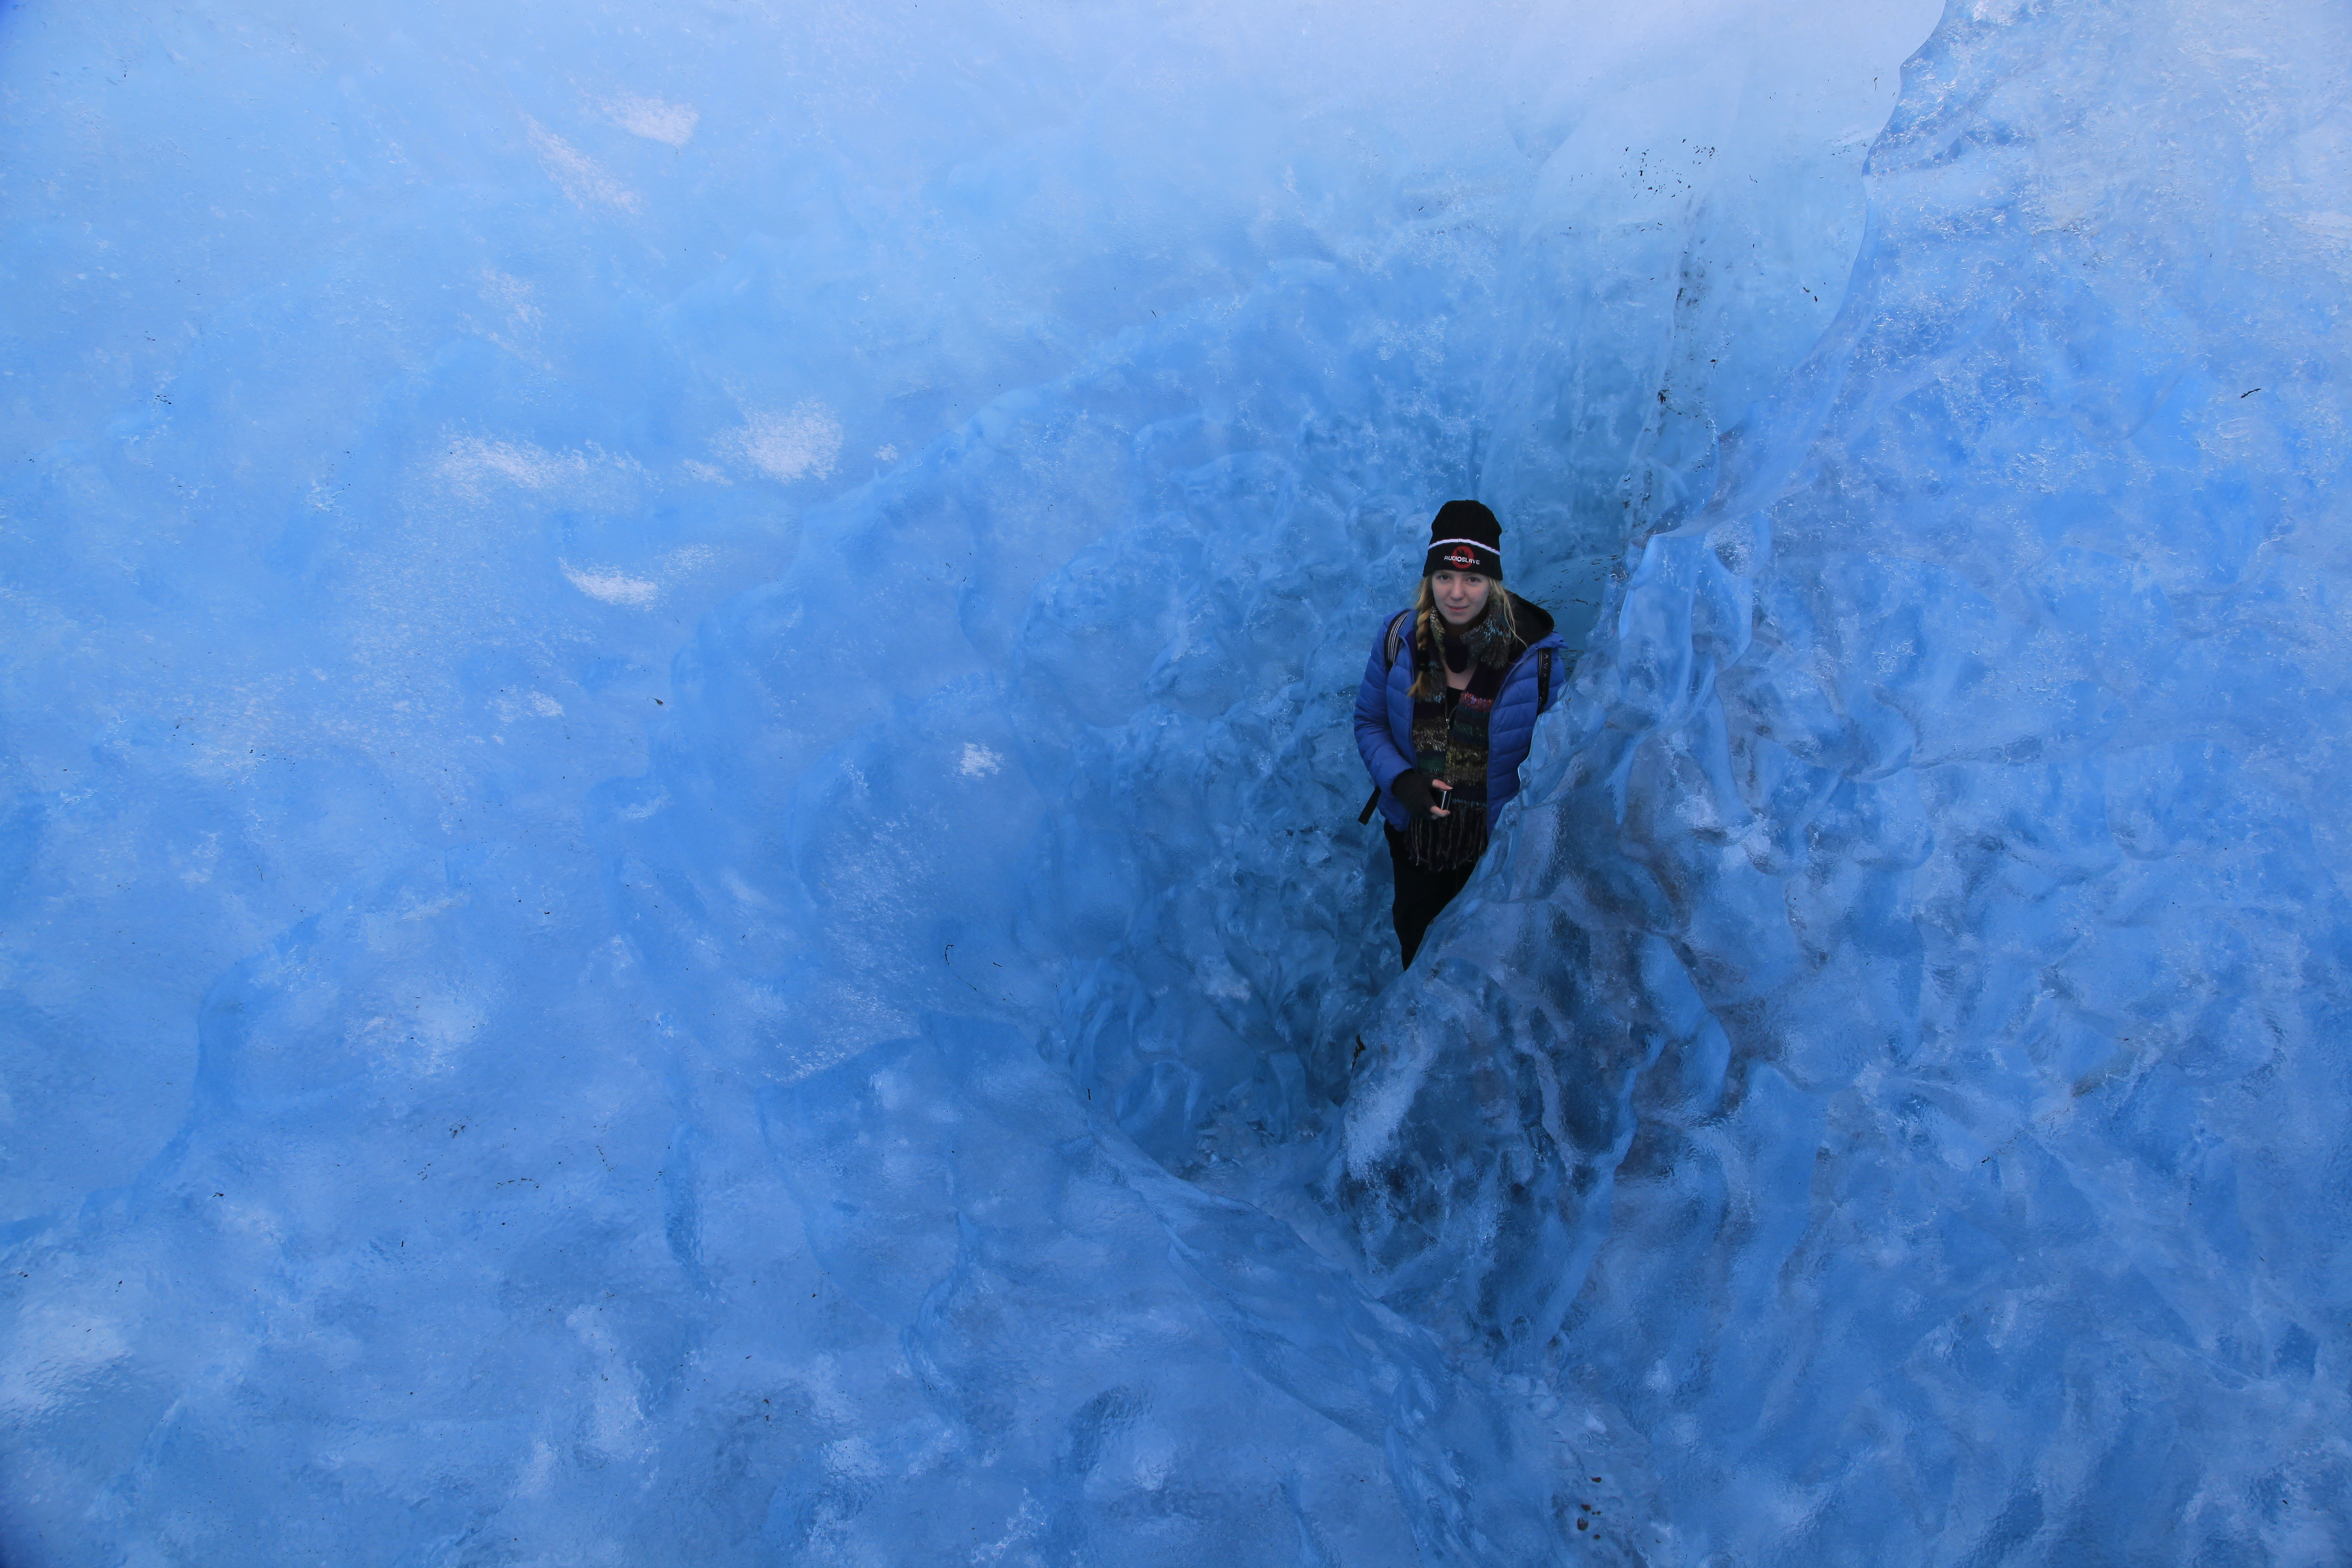 Blue Iceland - Ice Caving and Hiking tour - Guest in blue ice on Vatnajökull, Iceland.